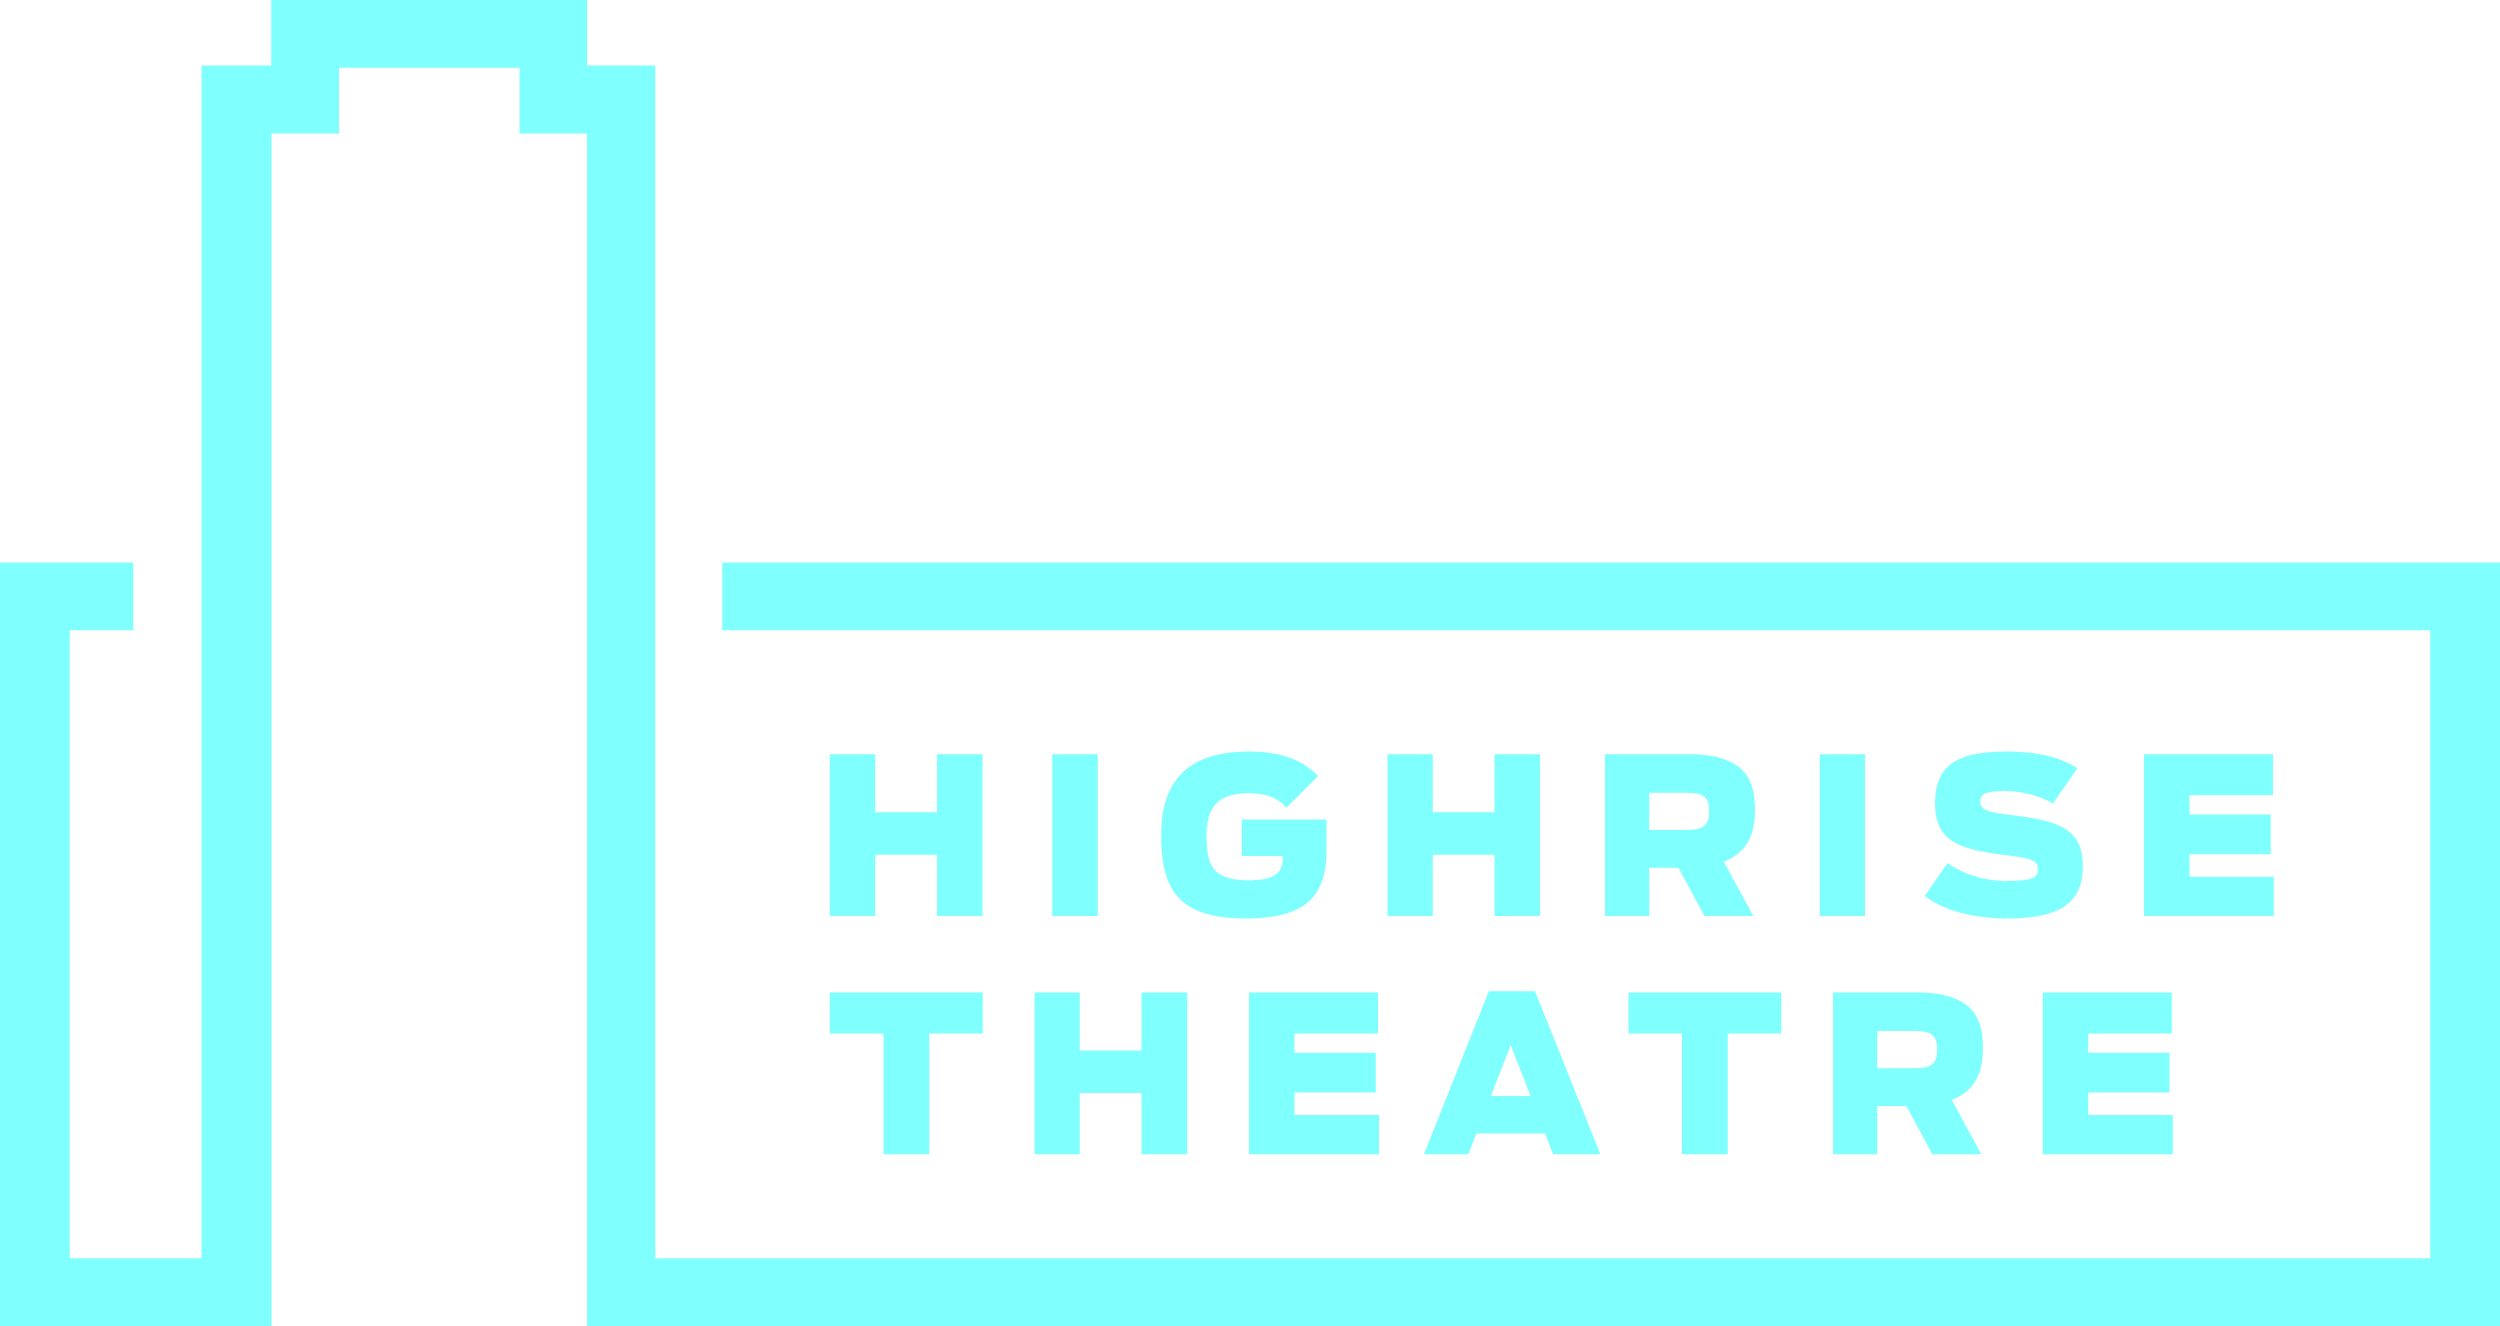 HighRise Theatre - Keeping an ear to the street - London